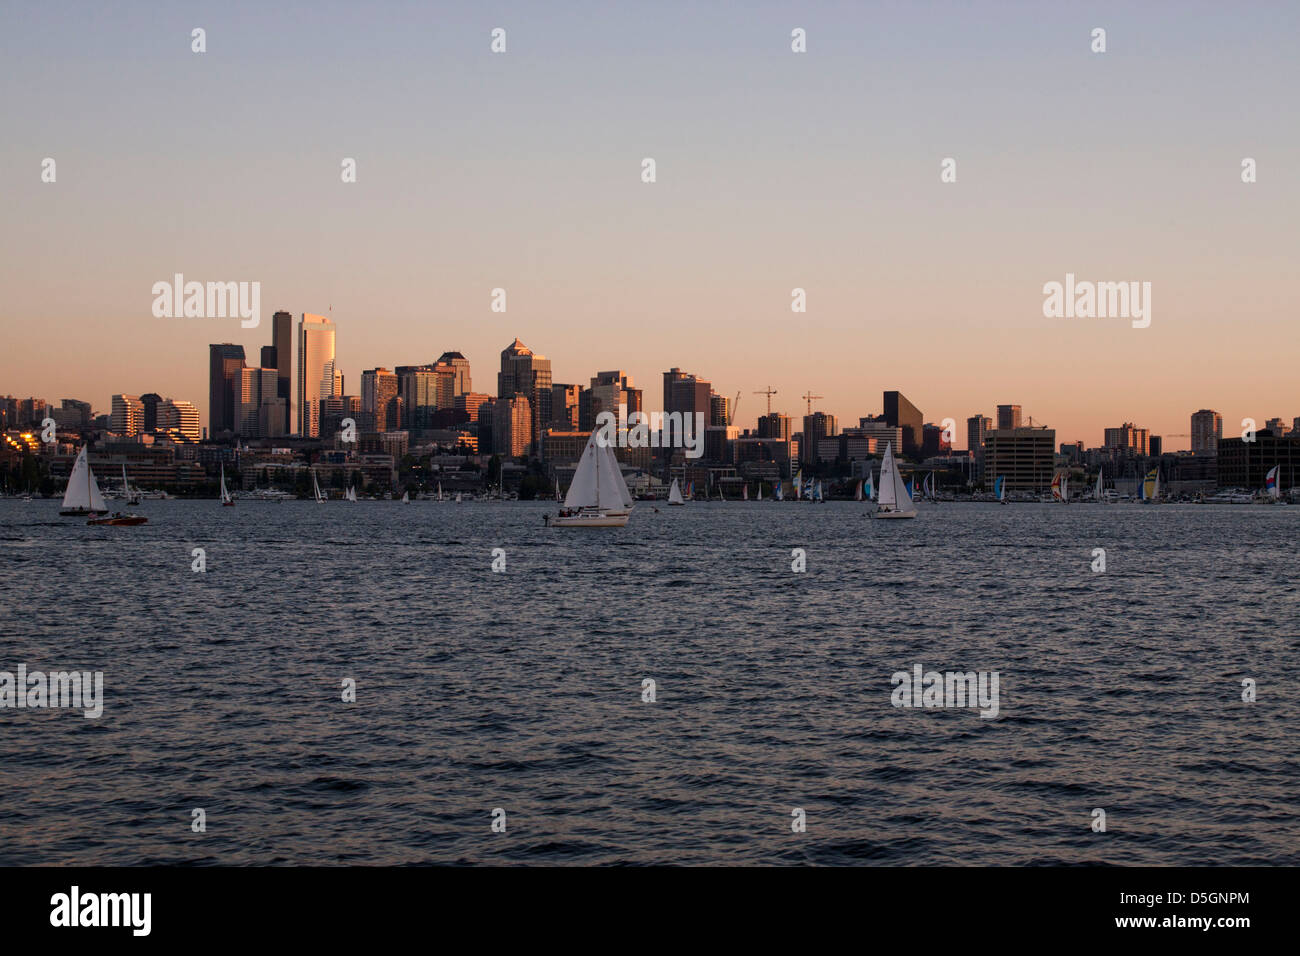 Seattle's Lake Union with the downtown in the background. - Stock Image